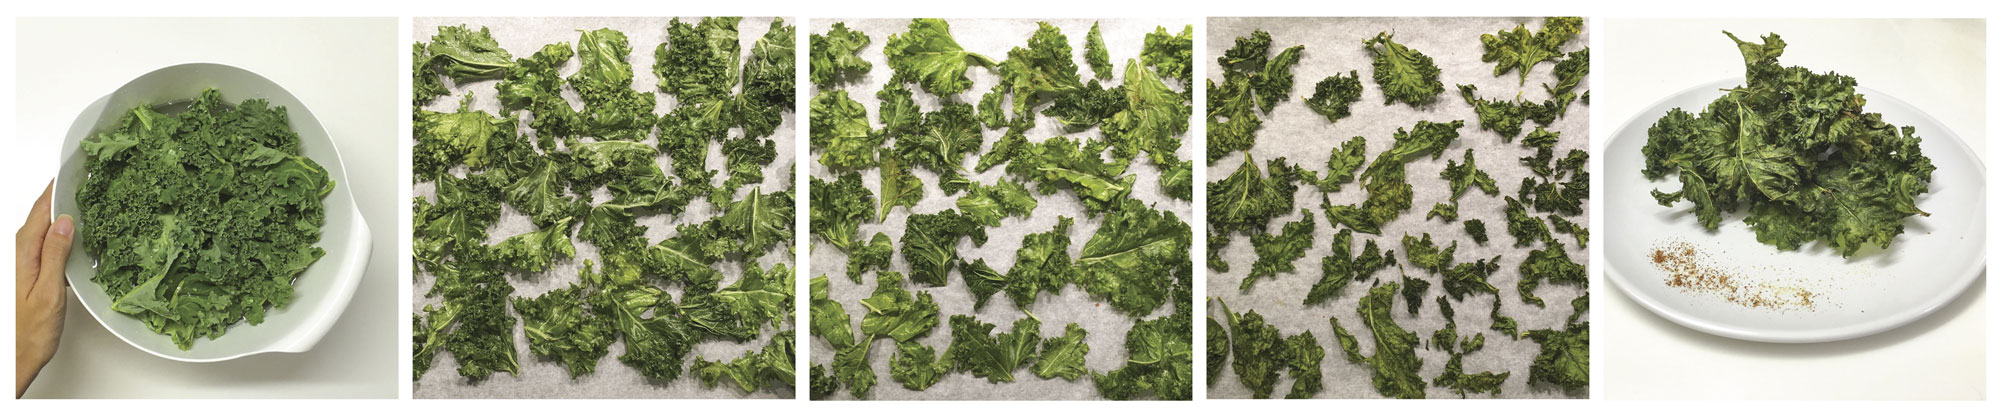 Steps to making kale chips, with washing and using oven and serving